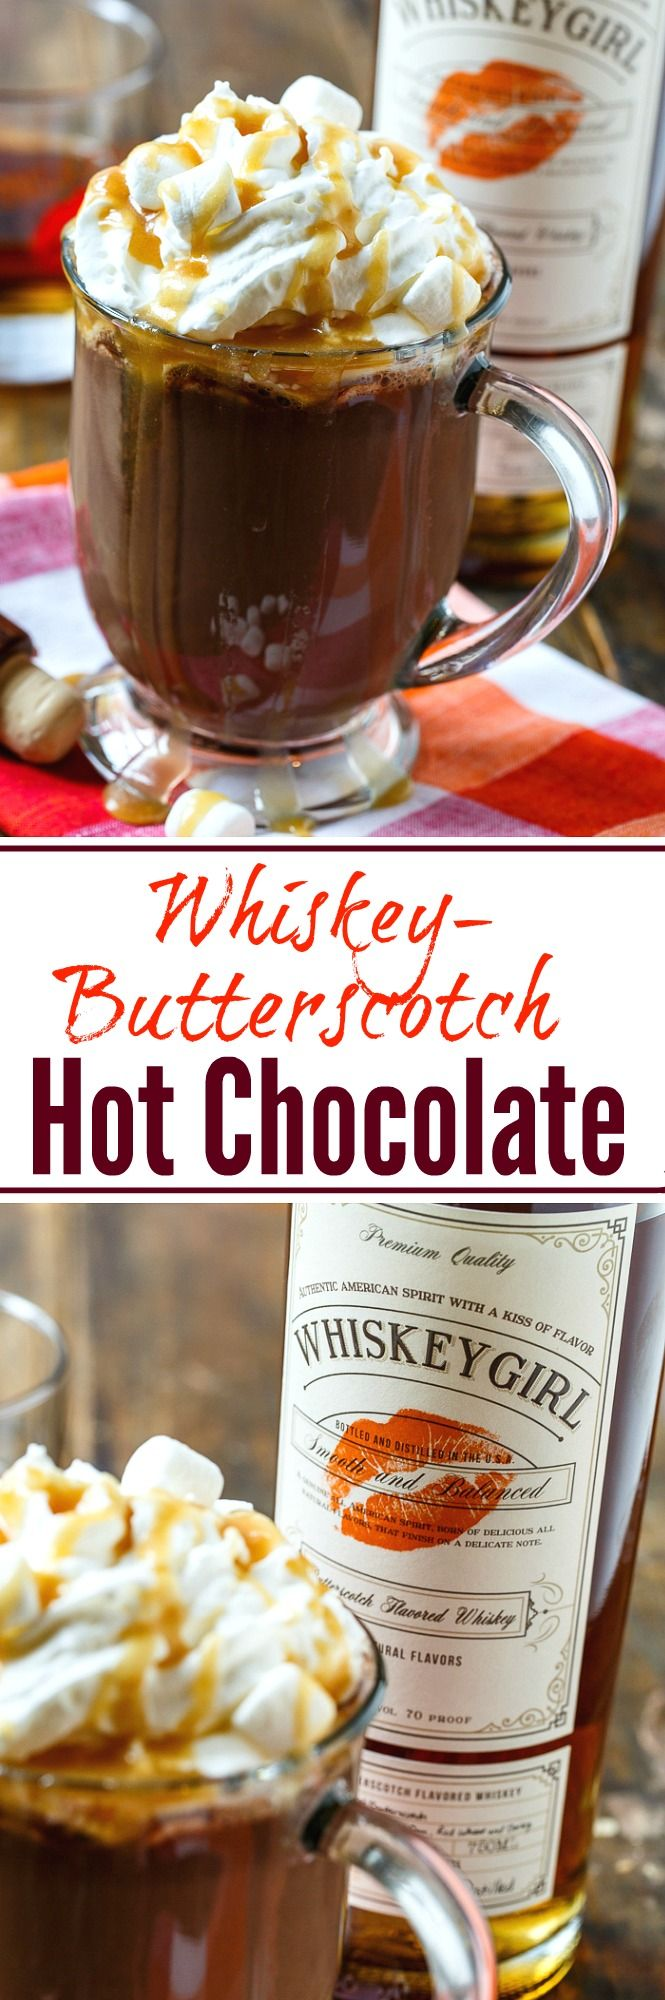 Whiskey-Butterscotch Hot Chocolate topped with whipped cream and caramel sauce. Perfect for Valentine's Day.